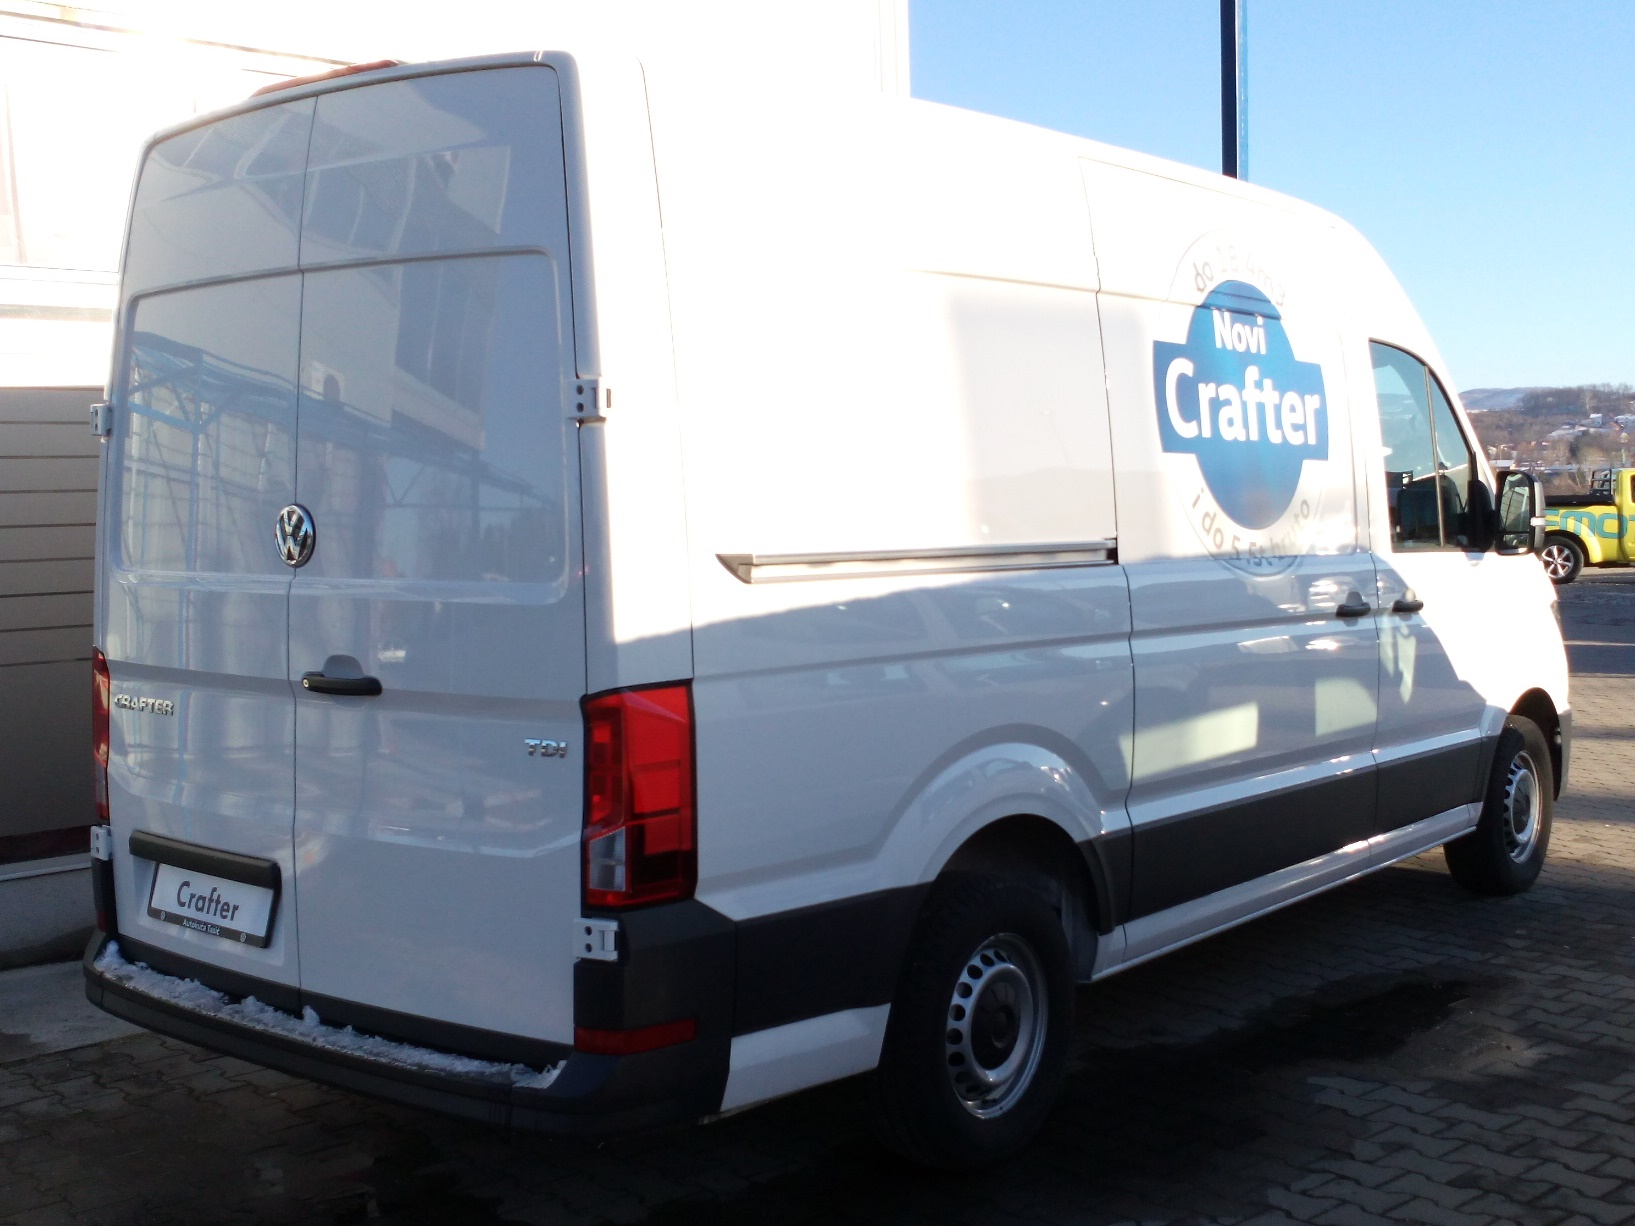 File:2018 VW Crafter Nazad jpg - Wikimedia Commons